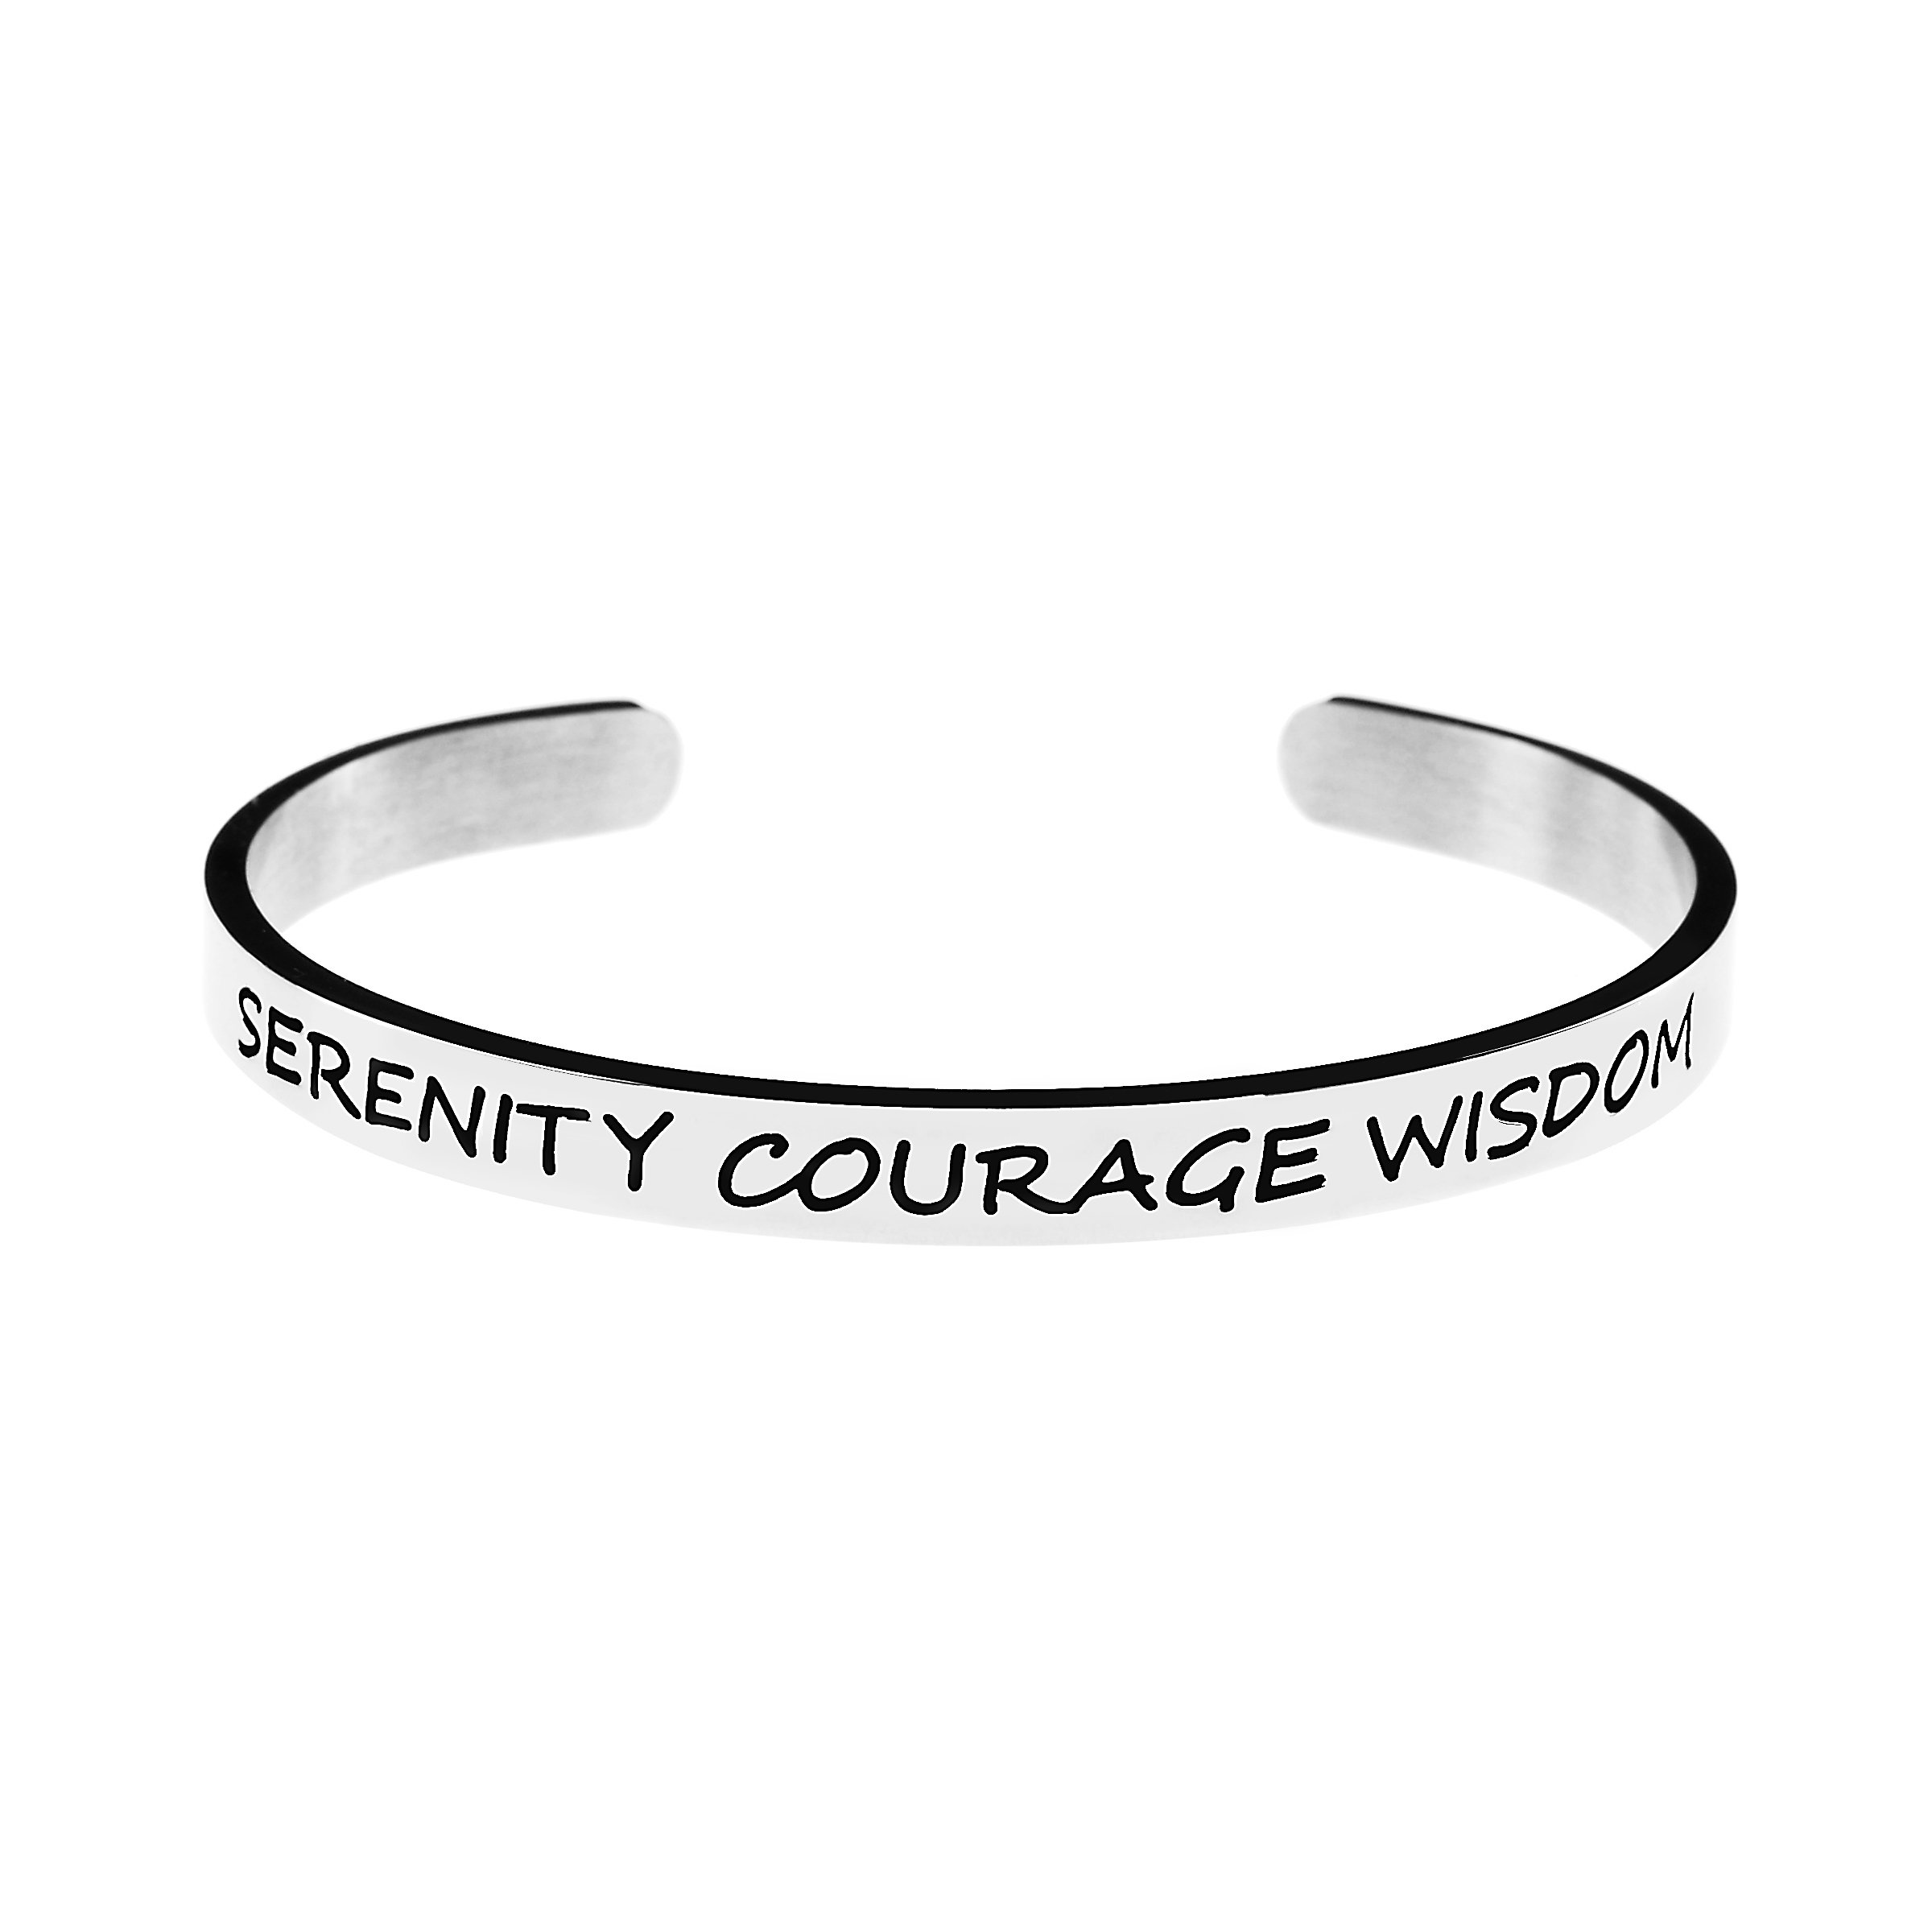 Joycuff Motivational Bracelet for Women Cuff Bangle Stainless Steel Open Engraved Inspirational Jewelry